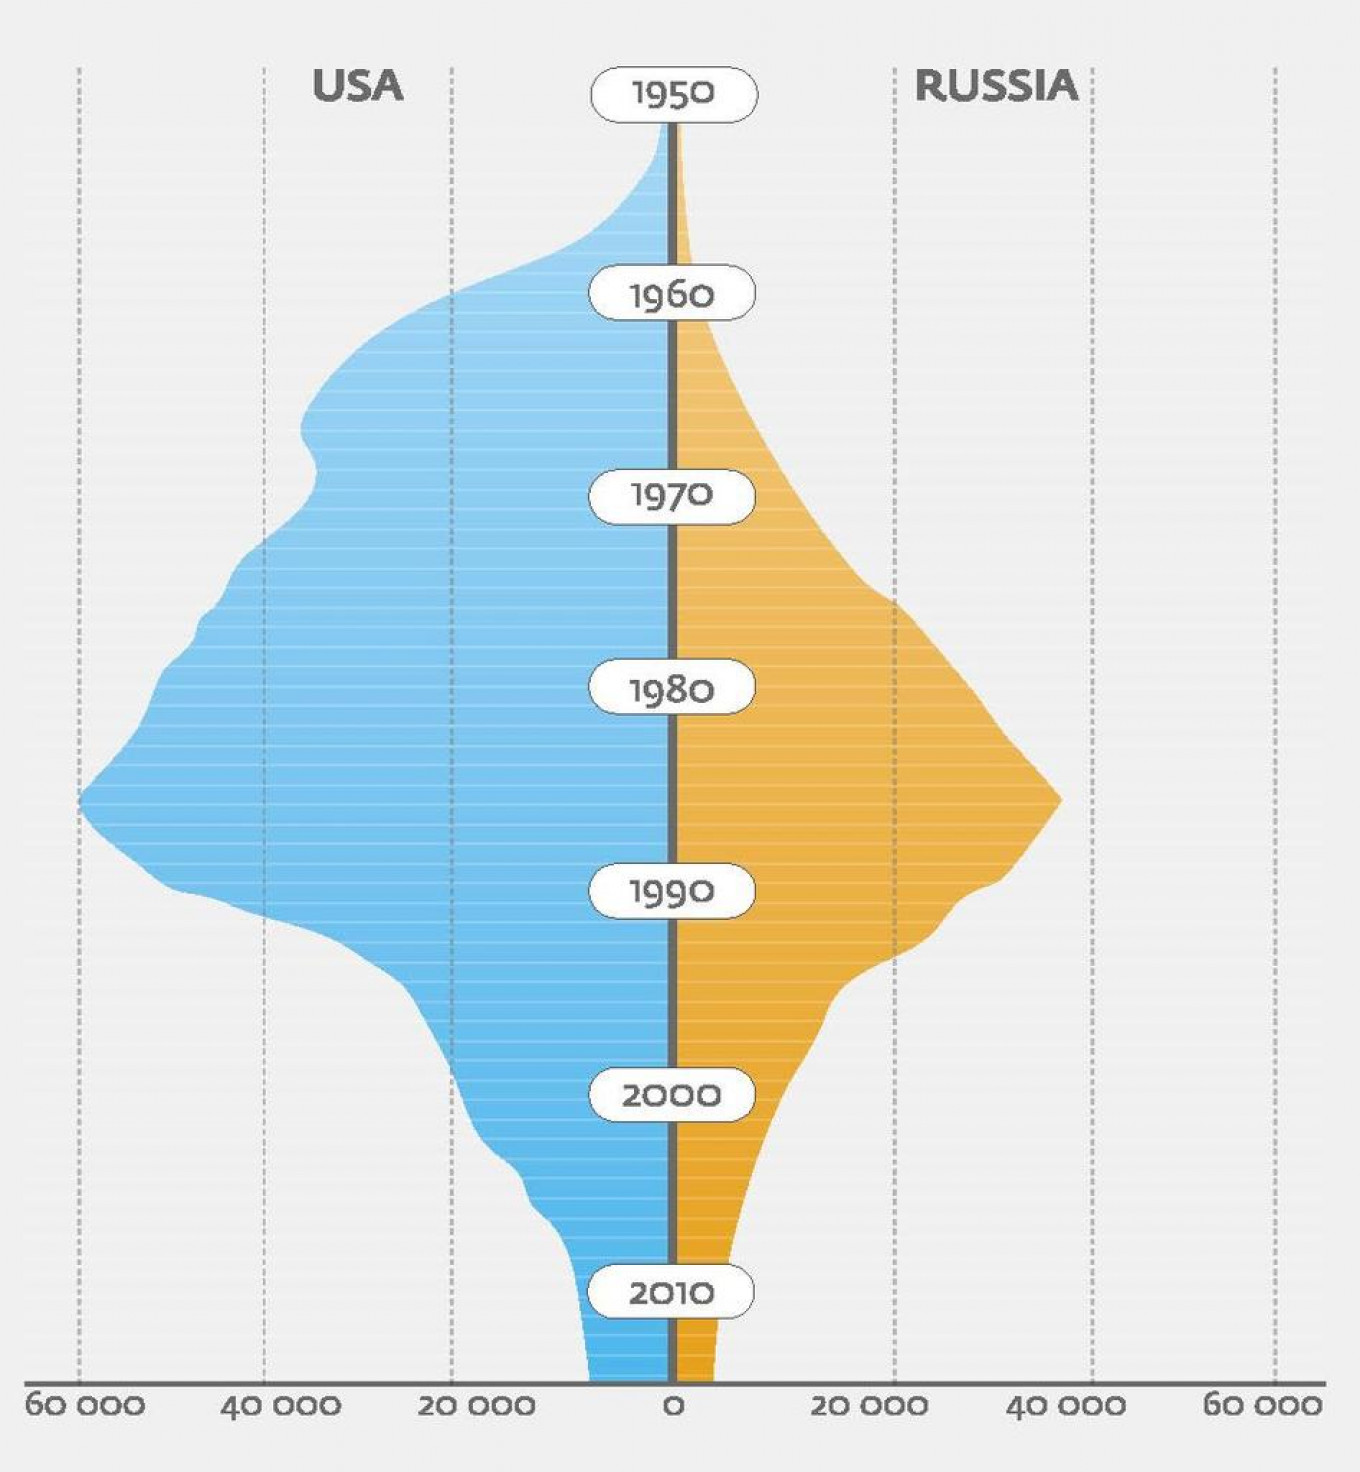 The size of American and Russian nuclear stockpiles over time. Bulletin of American Scientists